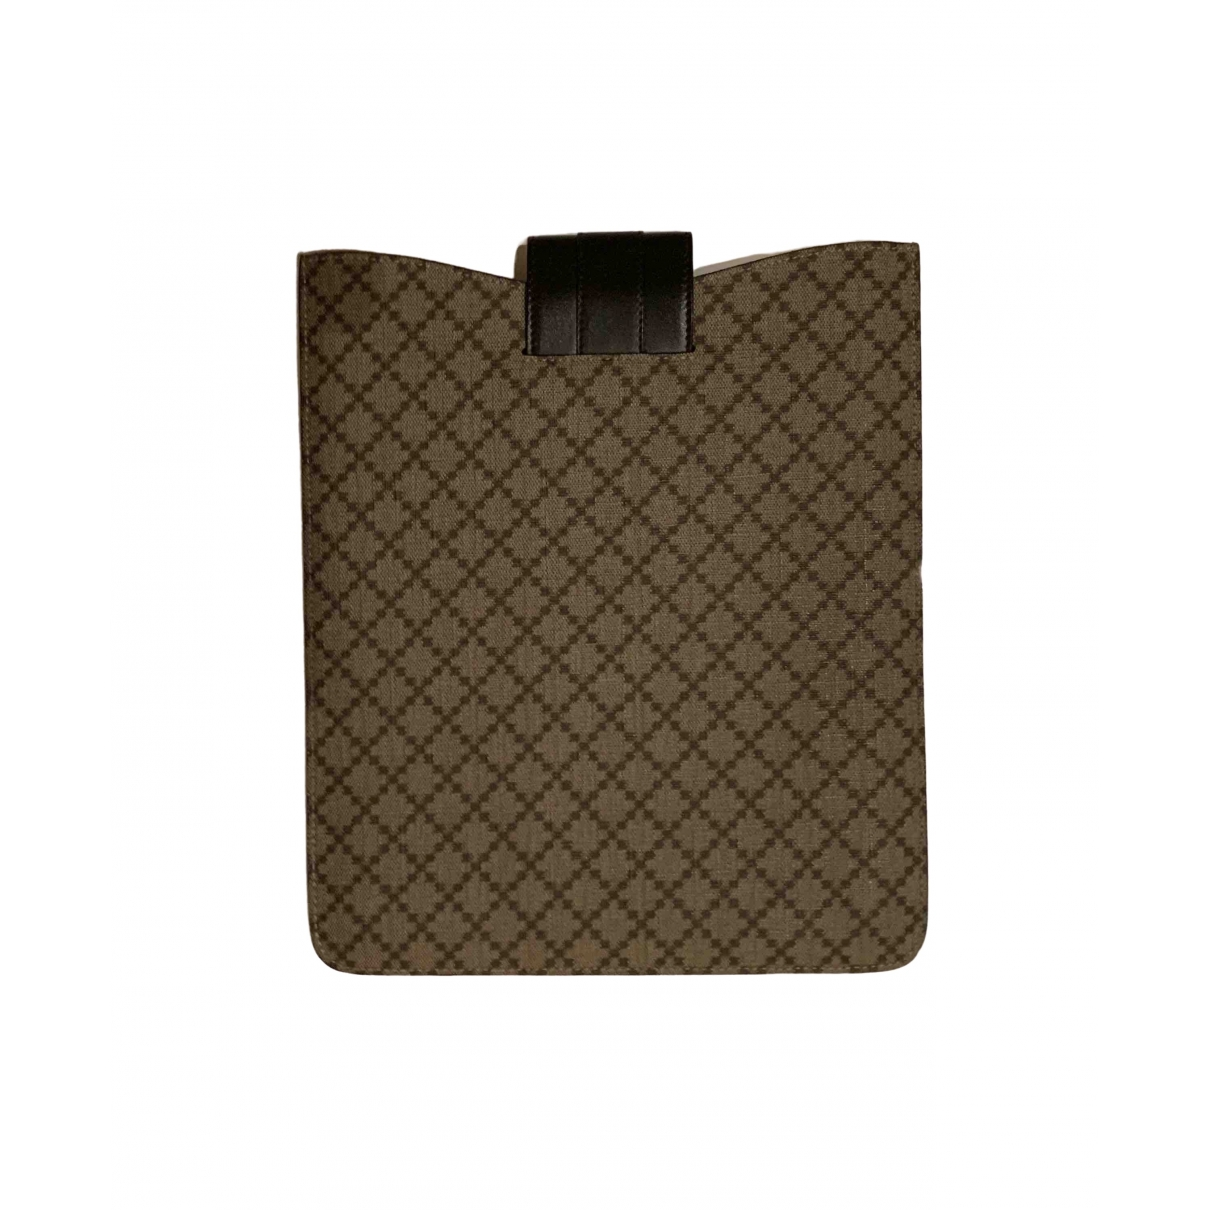 Gucci \N Cloth Accessories for Life & Living \N